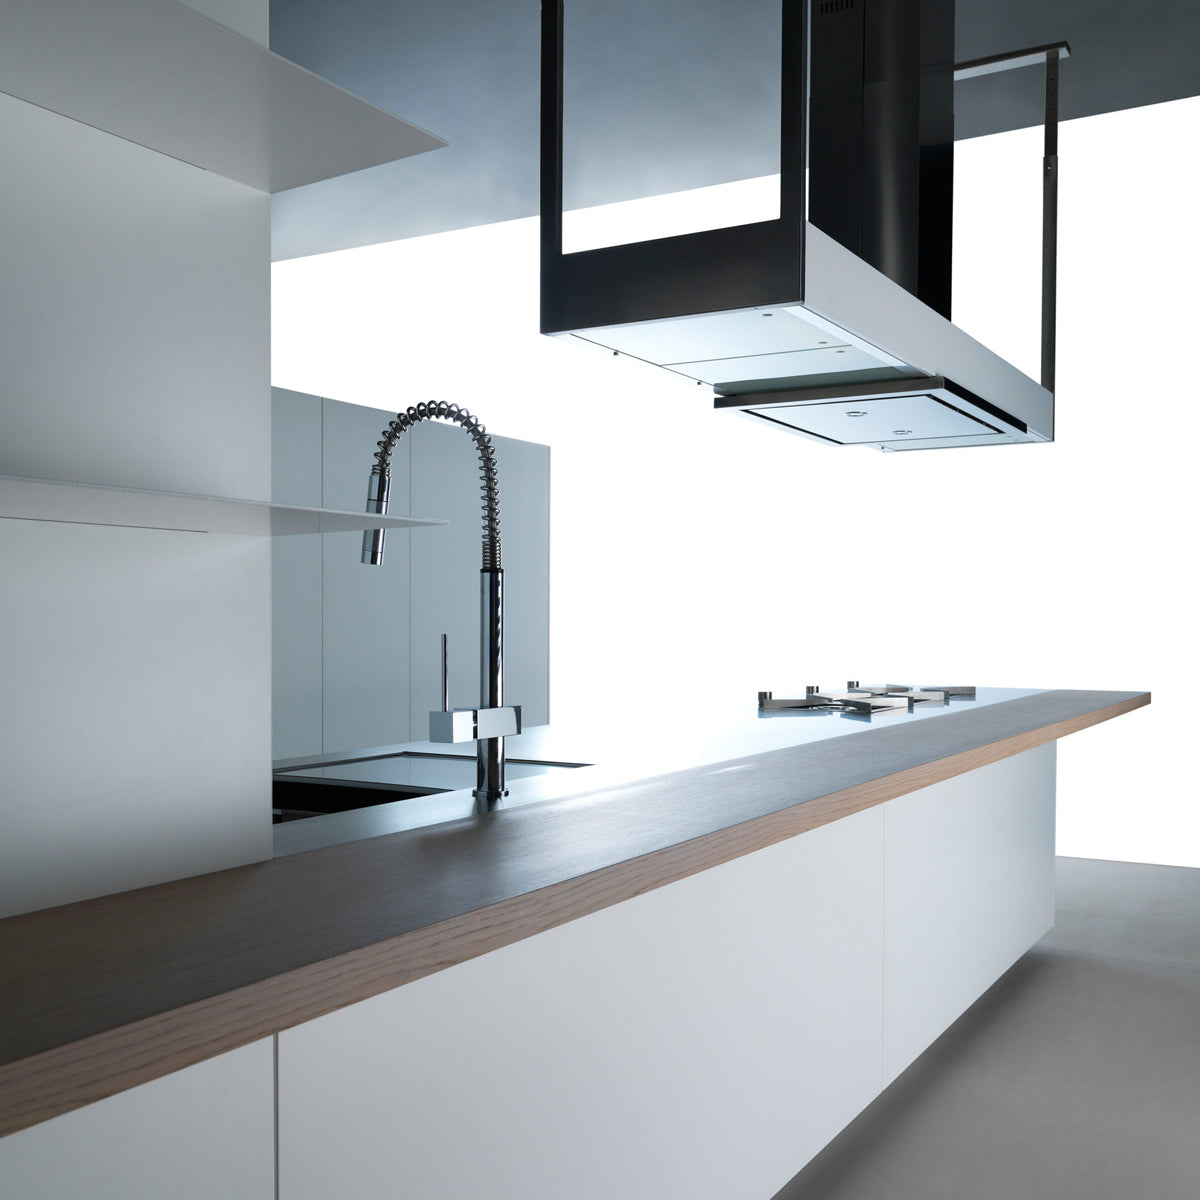 Kitchen design consultants in Dorset